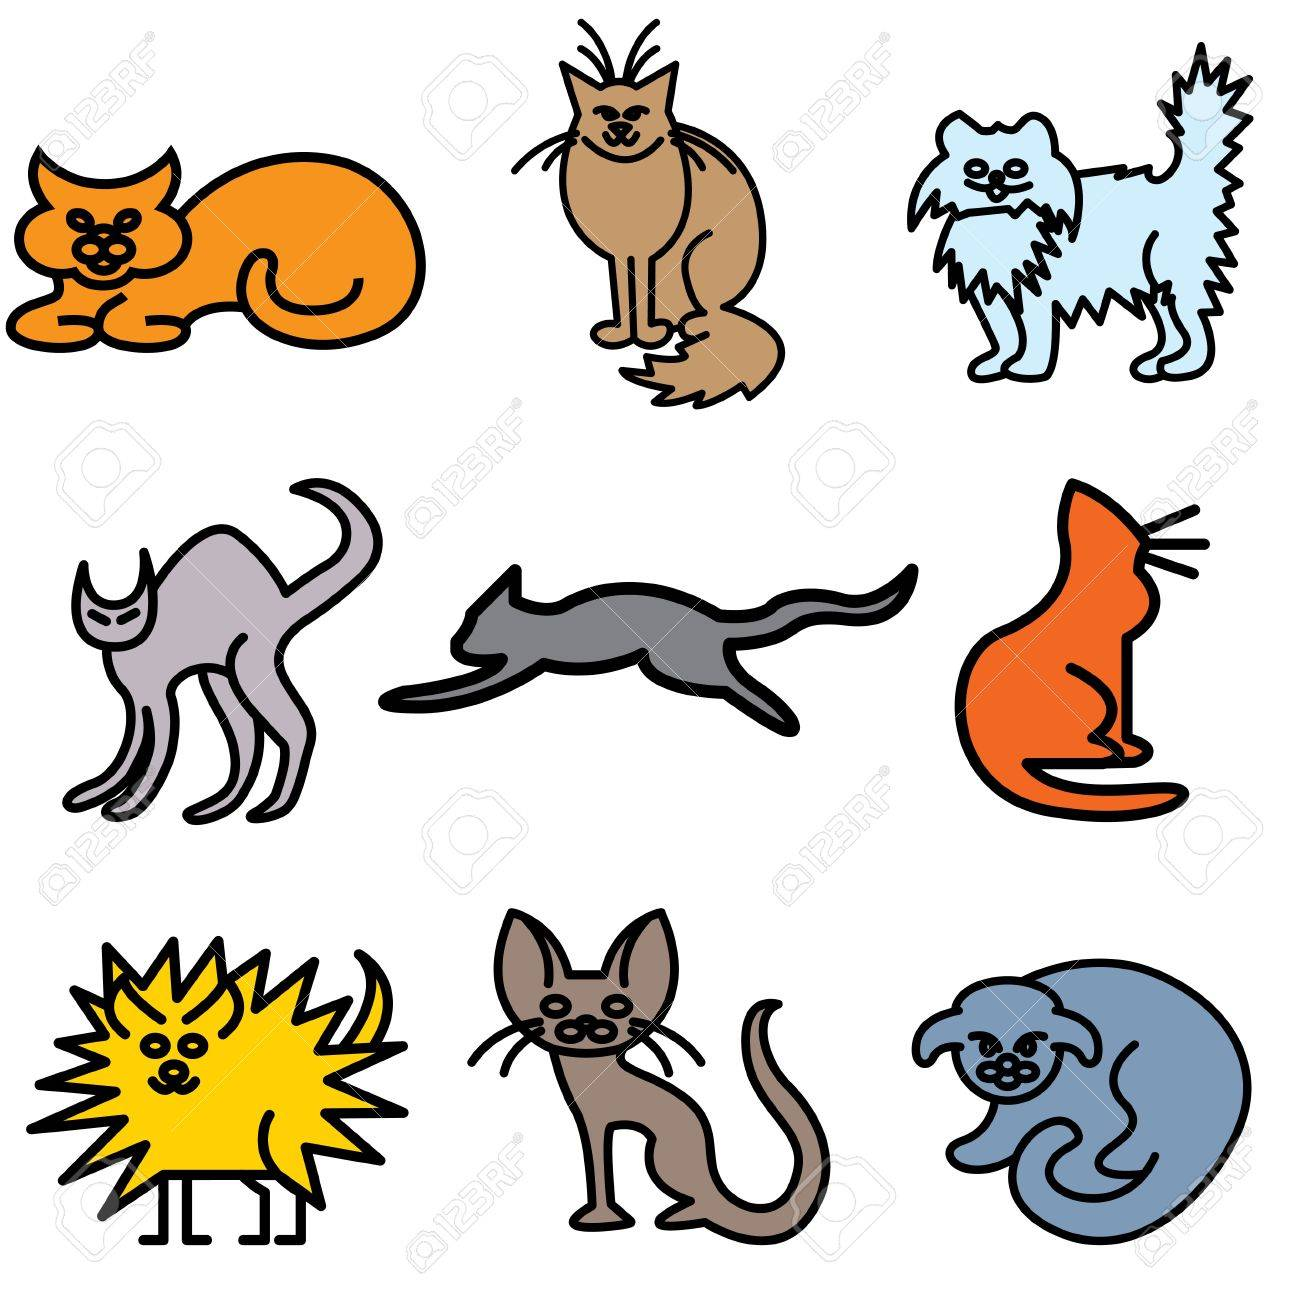 cat silhouette icons vector set Stock Vector - 13406475